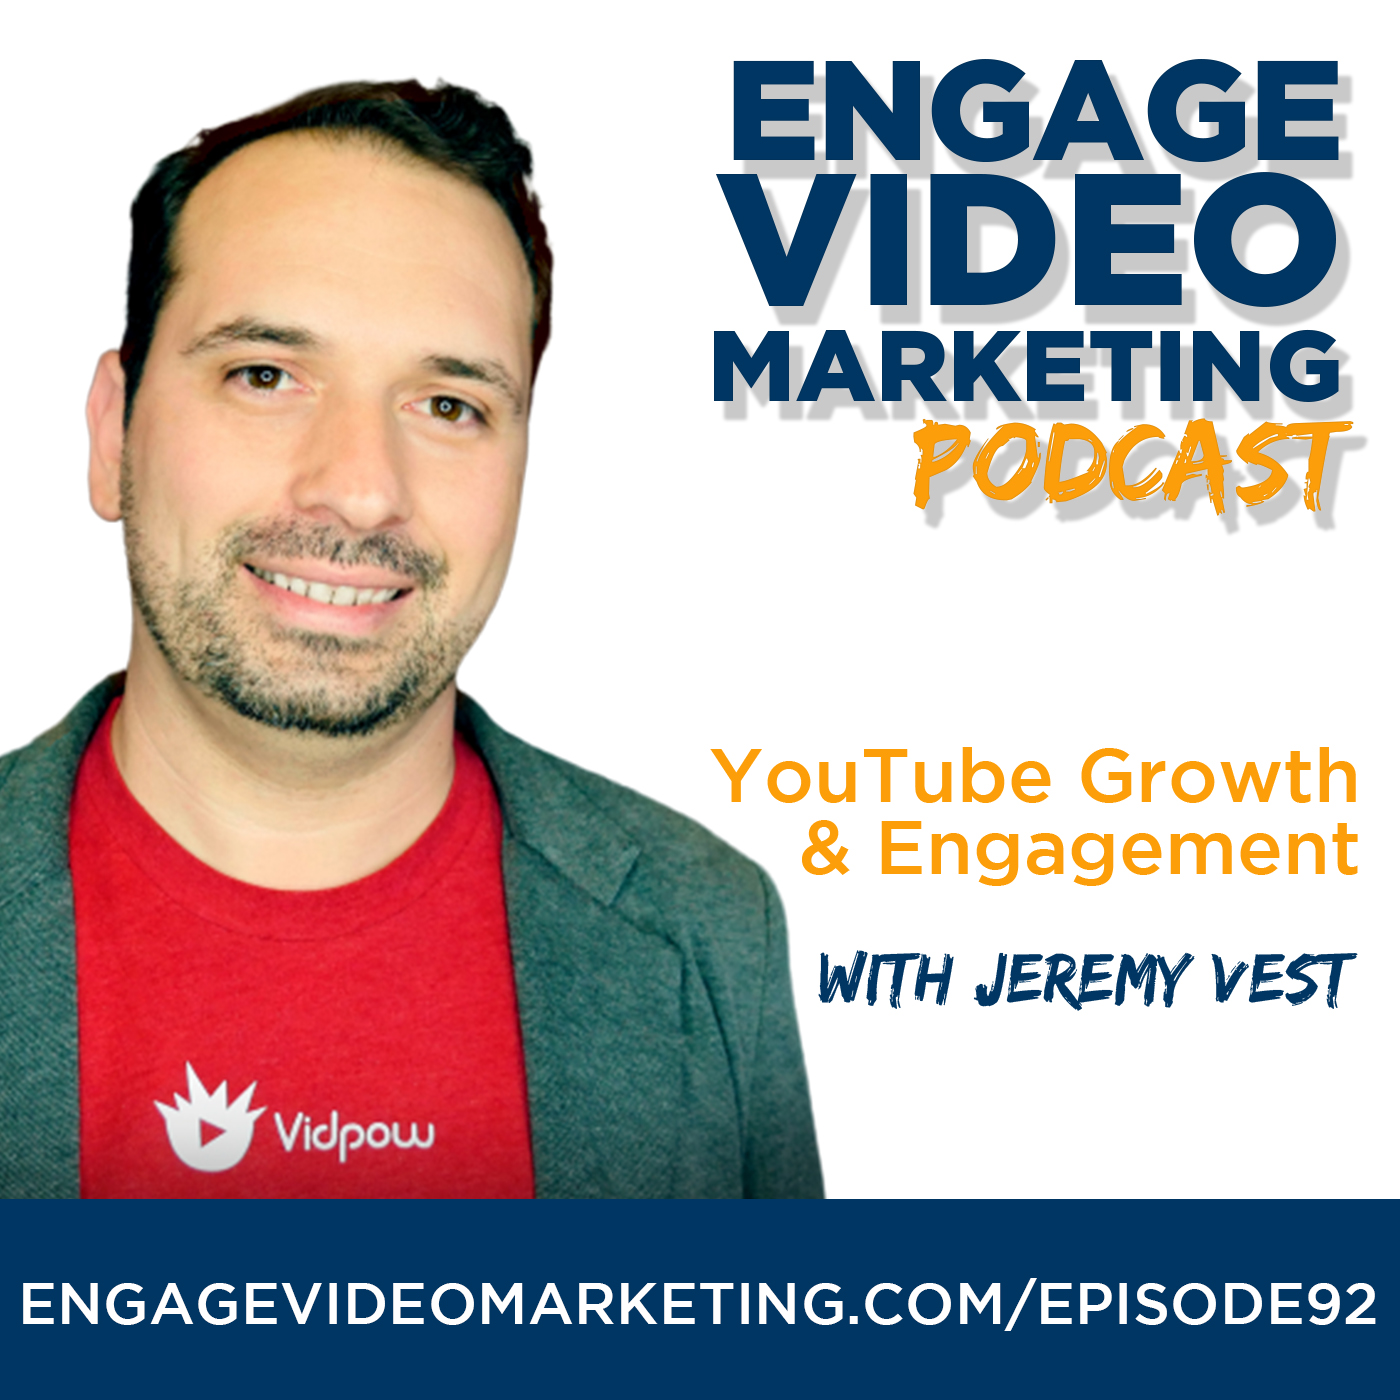 YouTube Growth and Engagement with Jeremy Vest from VidIQ